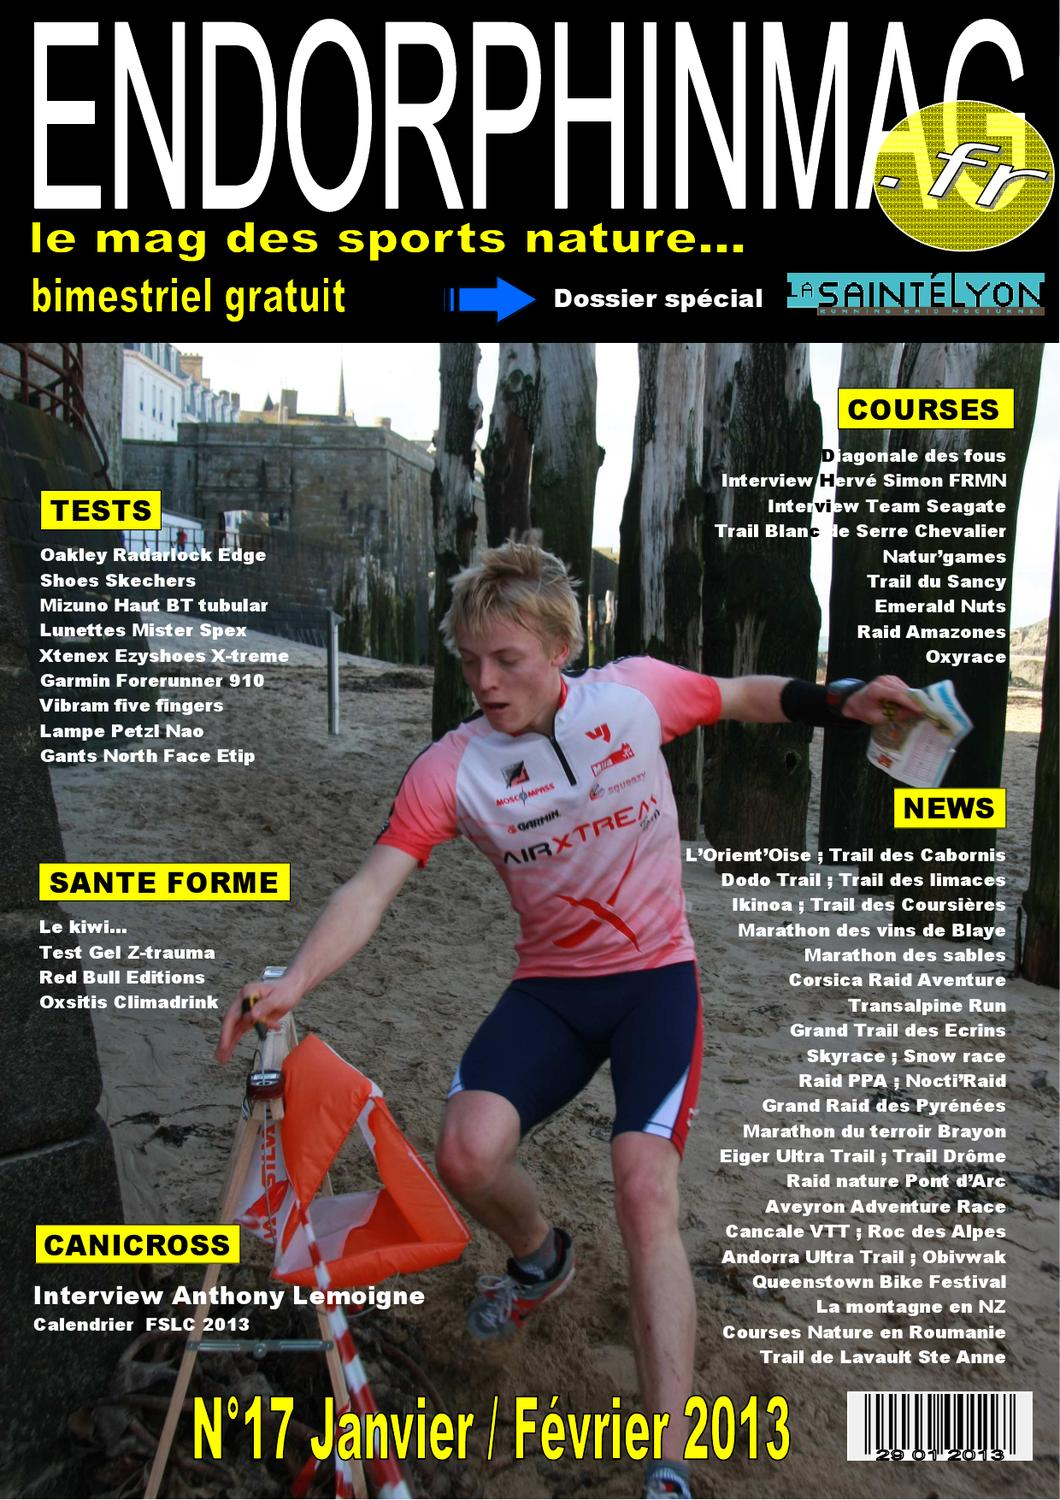 4660d1f4e85ac7 Endorphinmag Janvier Fevrier 2013 by endorphinmag - issuu